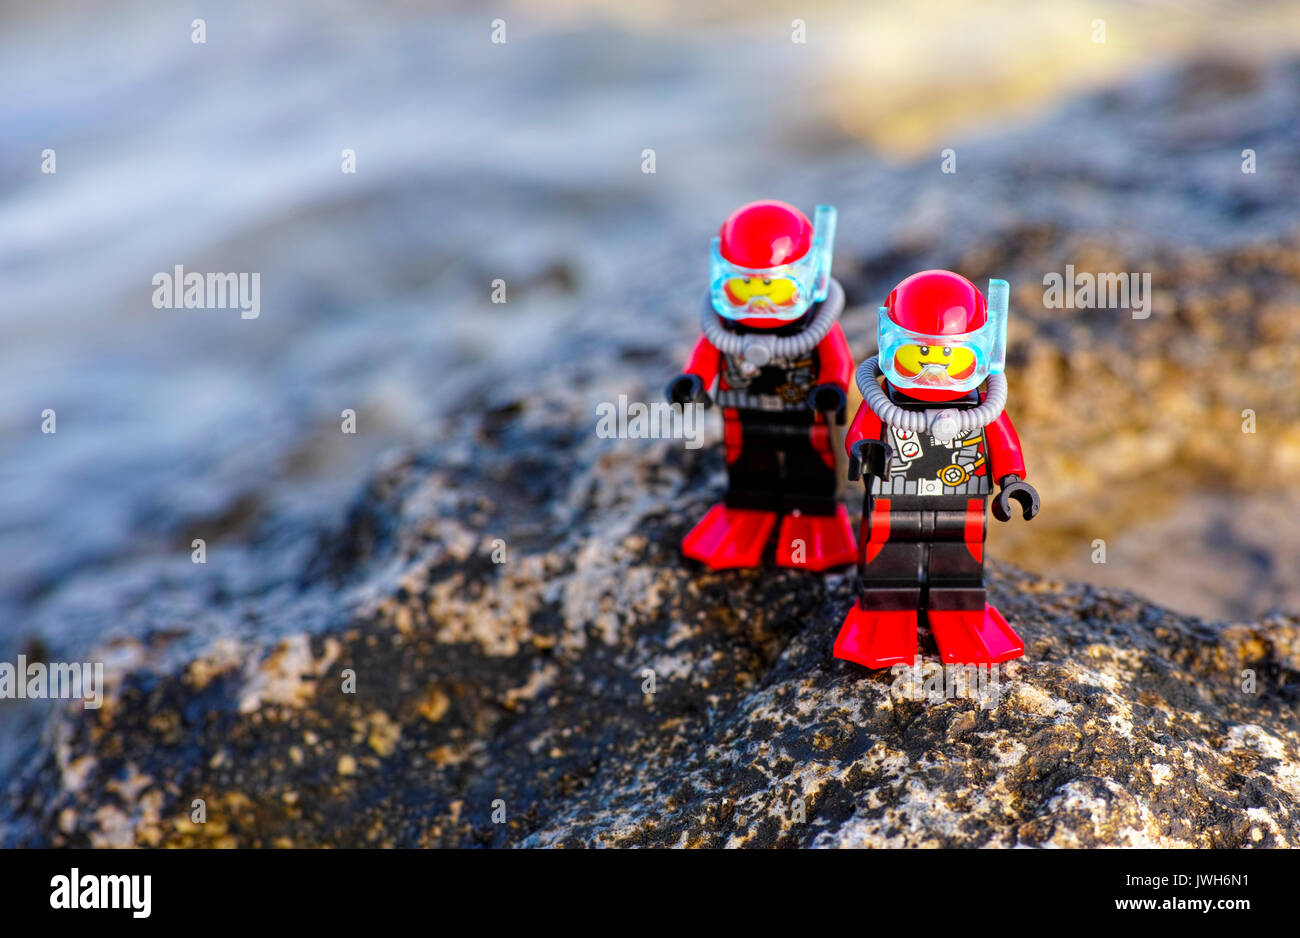 Paphos, Cyprus - October 09, 2016 Two Lego scuba divers minifigures standing on sea rock. - Stock Image